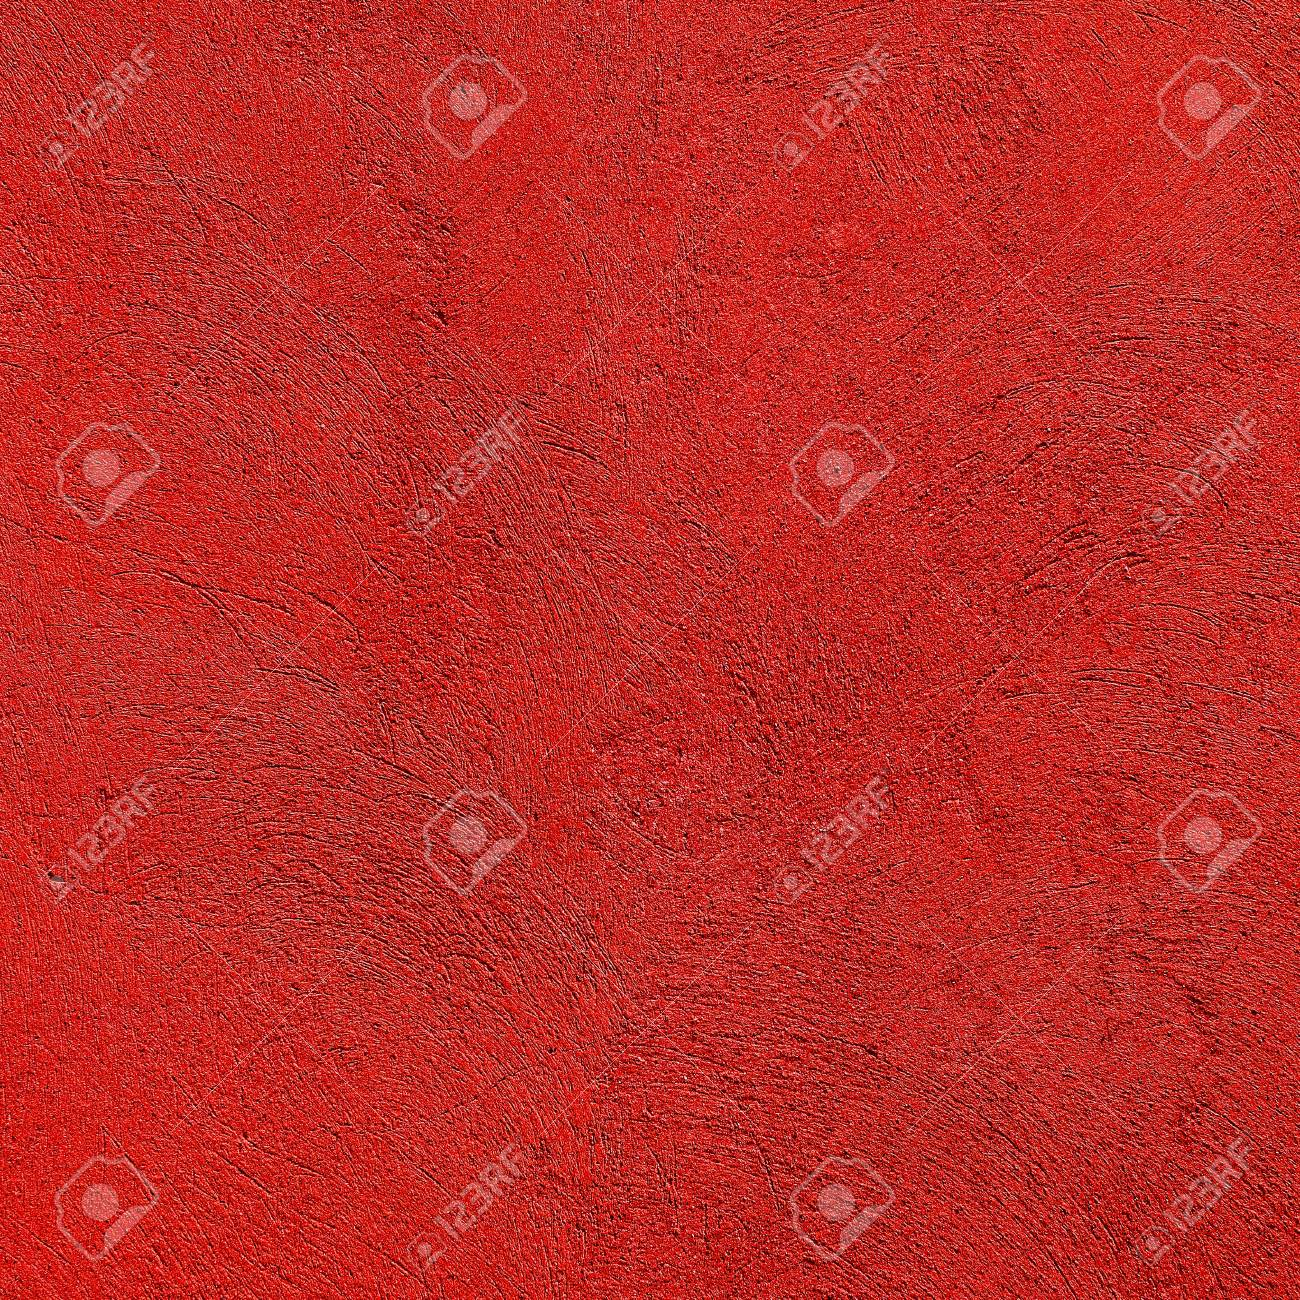 Red wall background or texture Stock Photo - 16983822